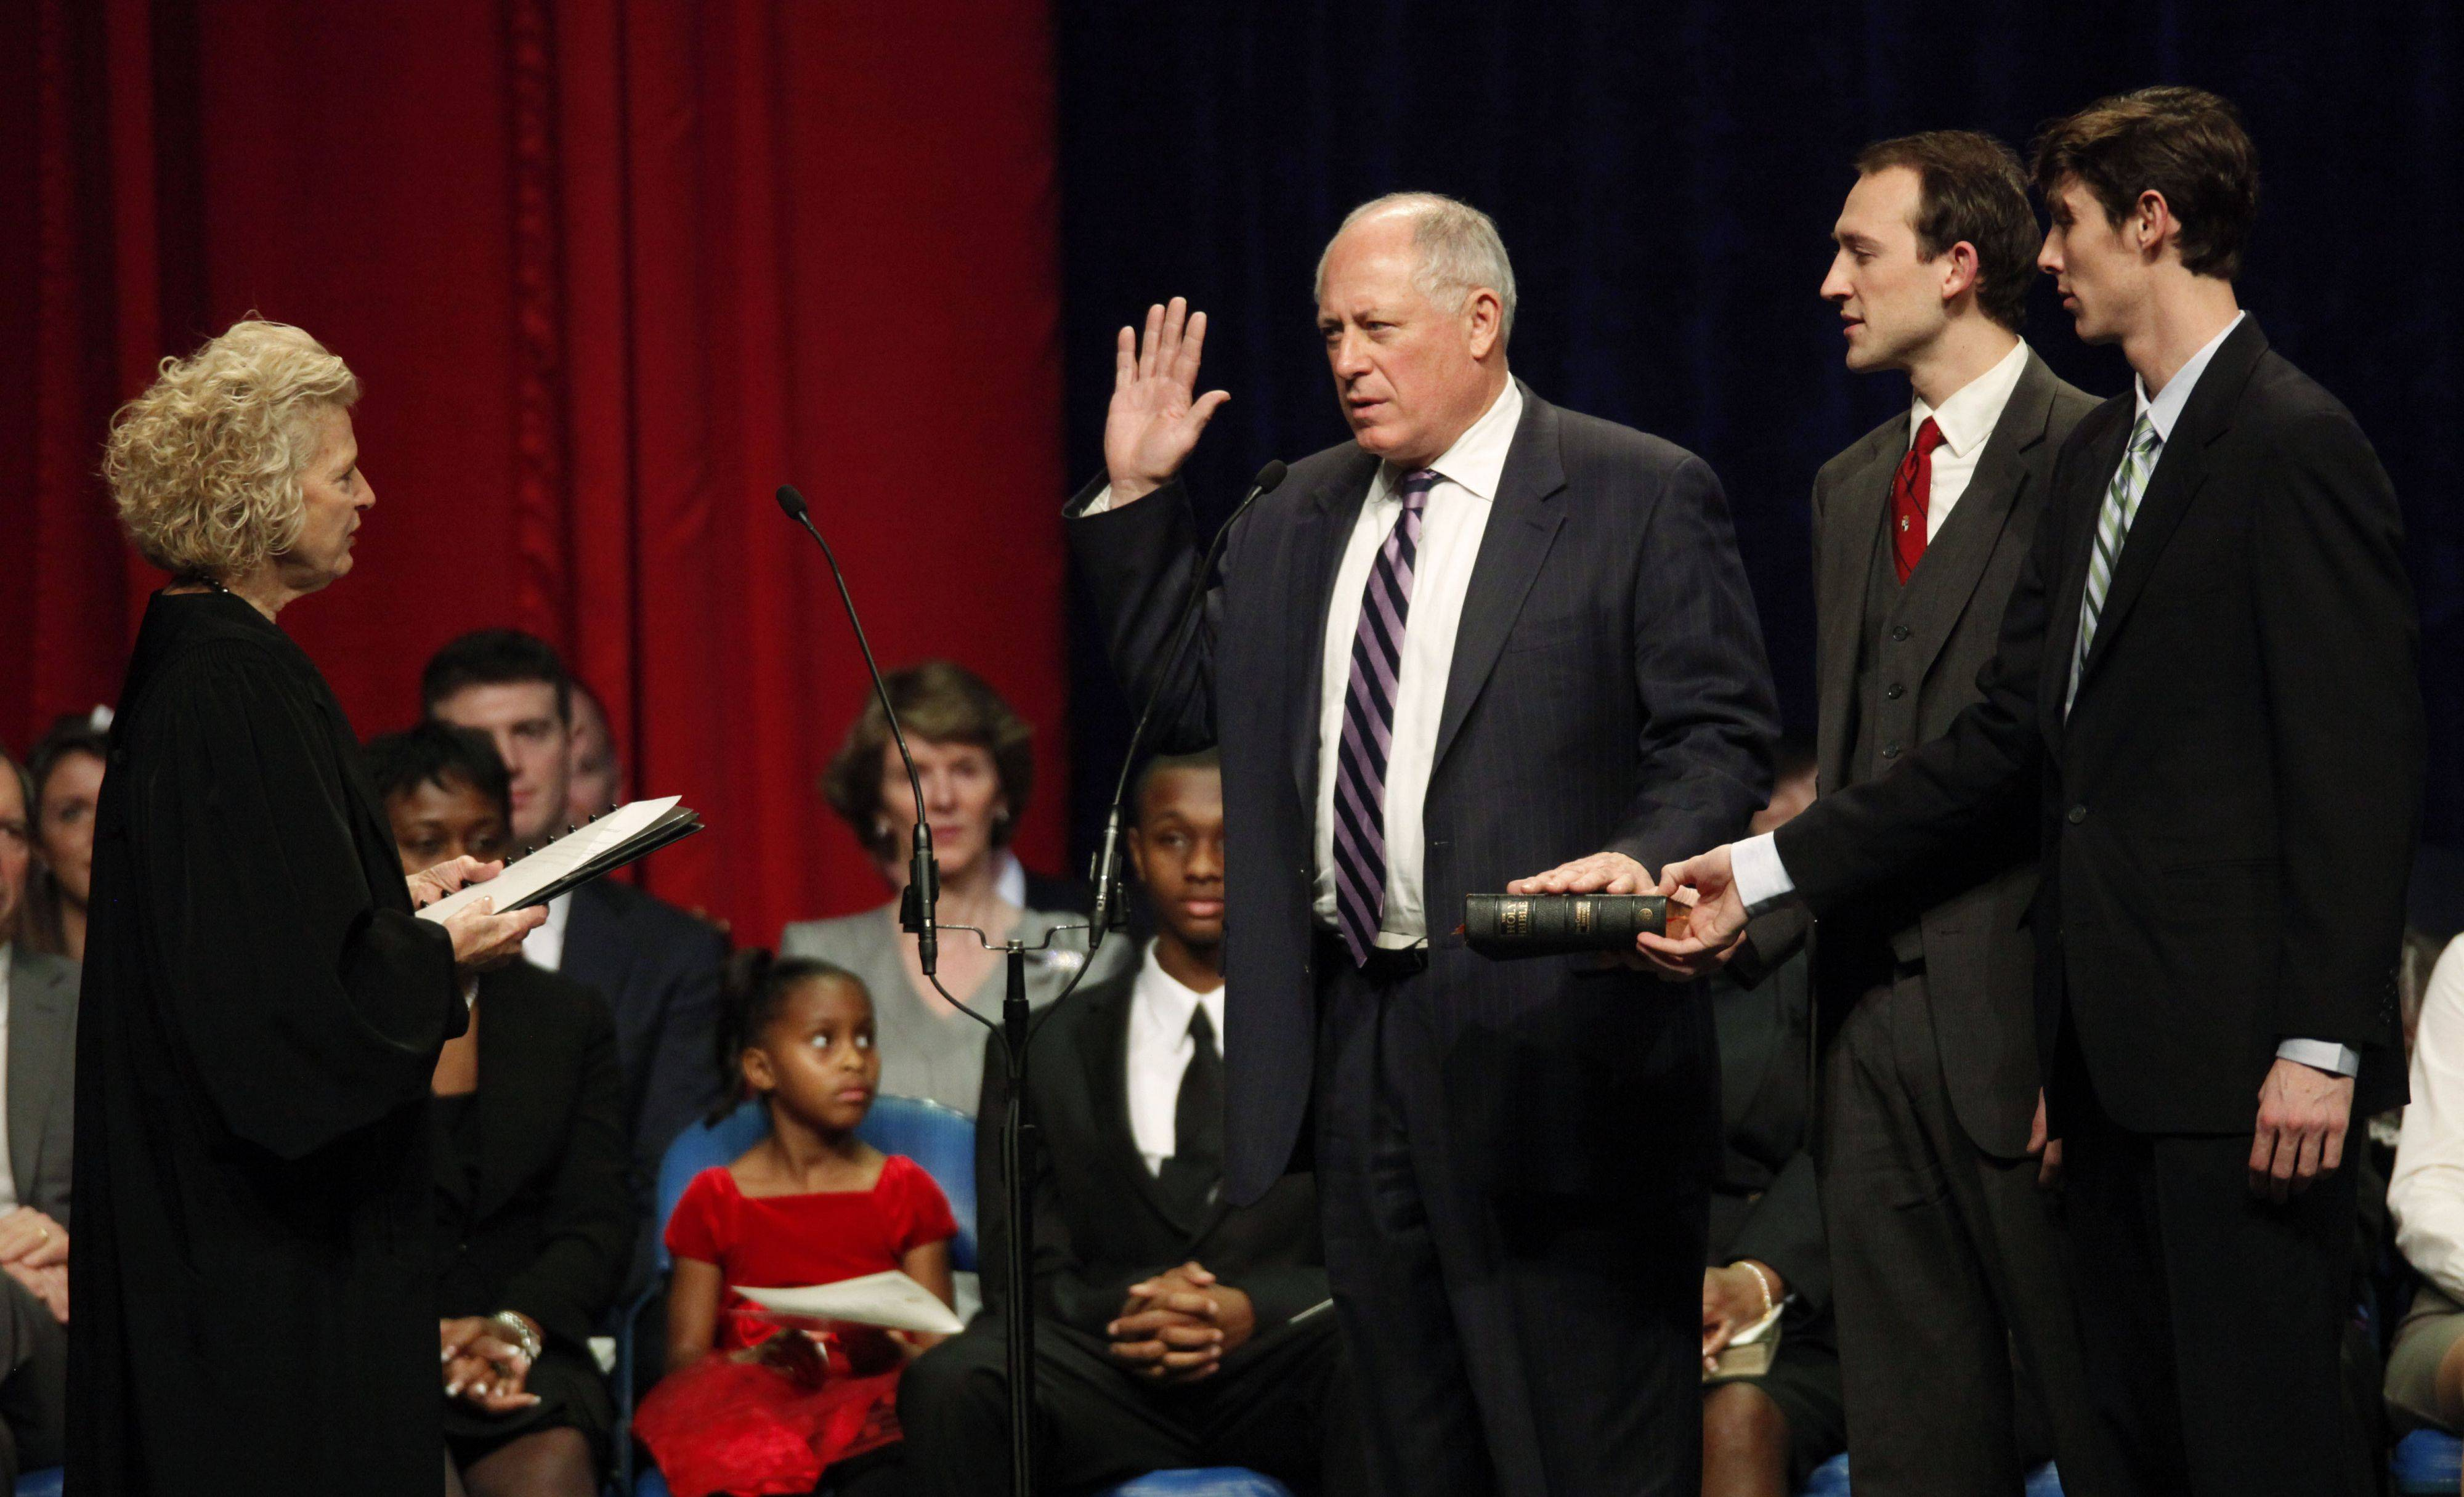 Gov. Pat Quinn, center, takes the oath of office in Springfield from Illinois Supreme Court Justice Anne M. Burke, as Quinn's sons Patrick and David hold the Bible he was sworn in on.